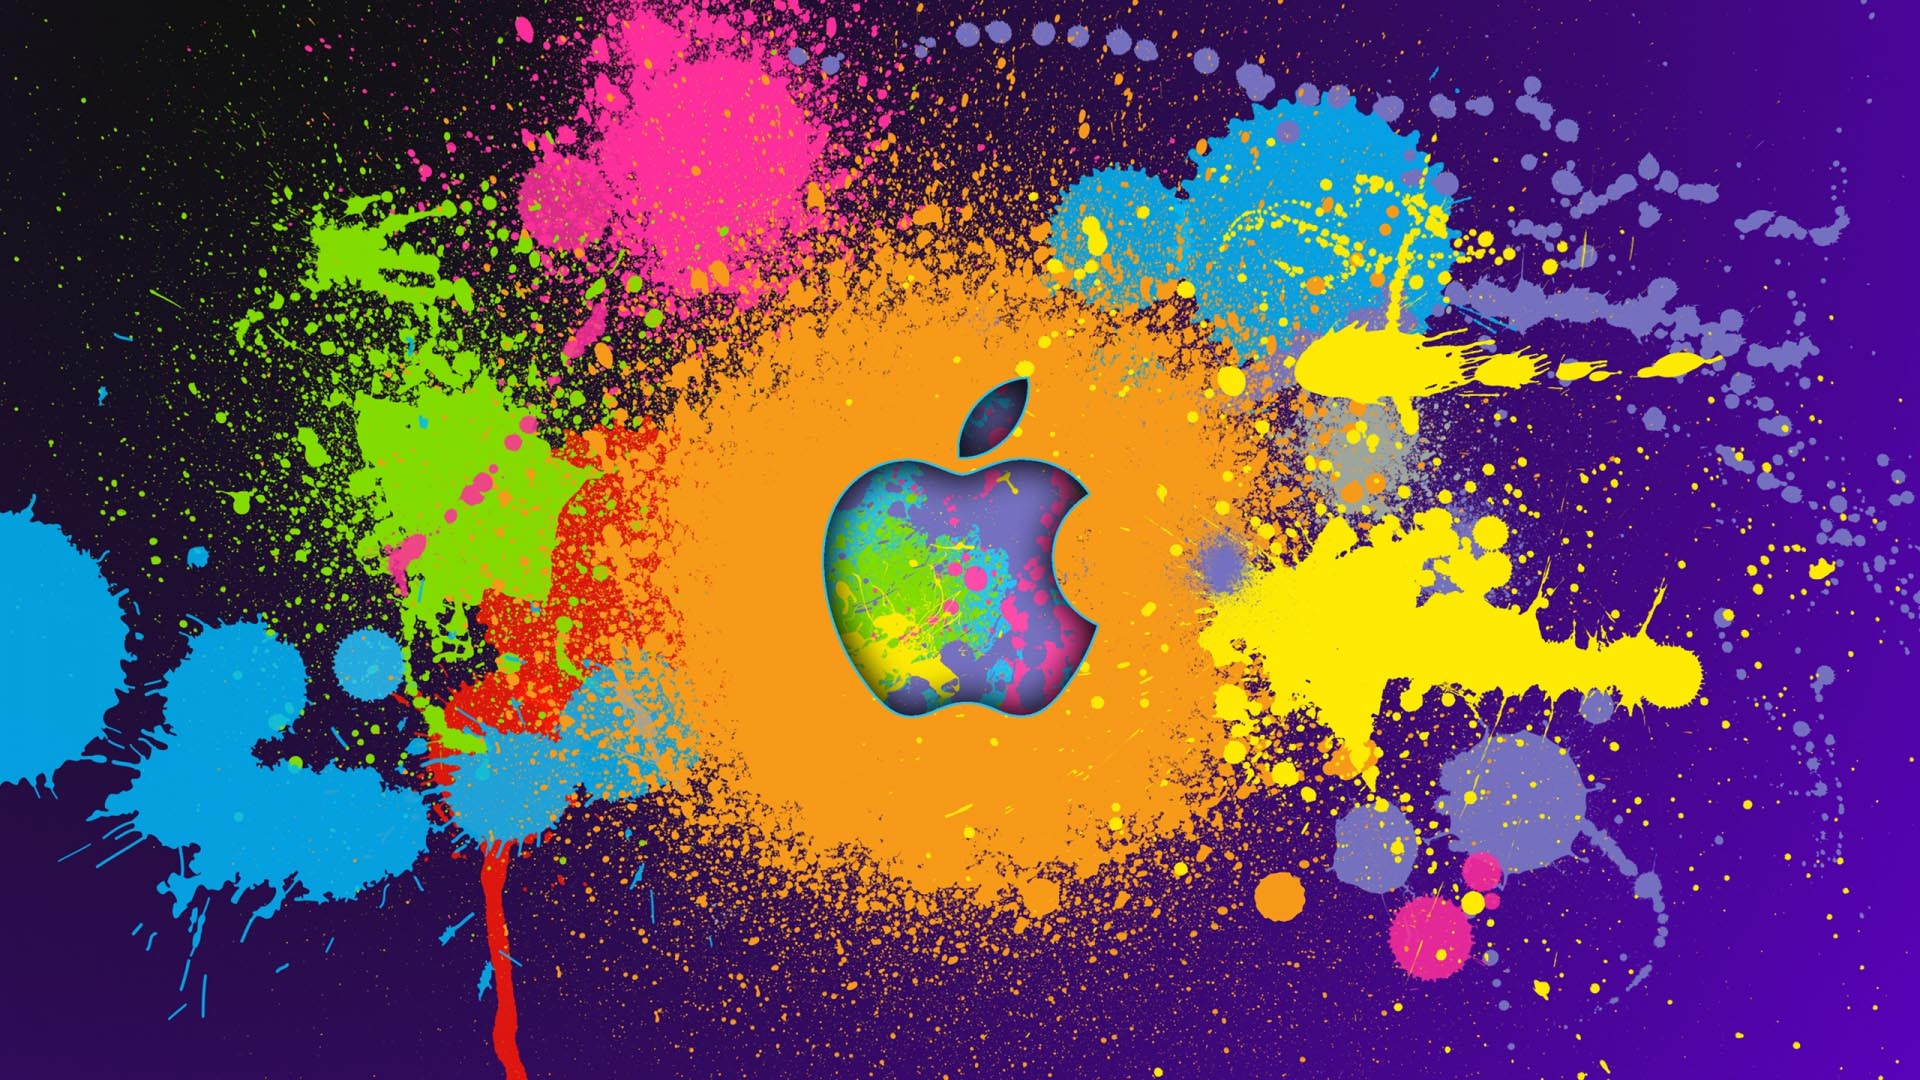 Cool Apple HD Wallpapers 1920x1080